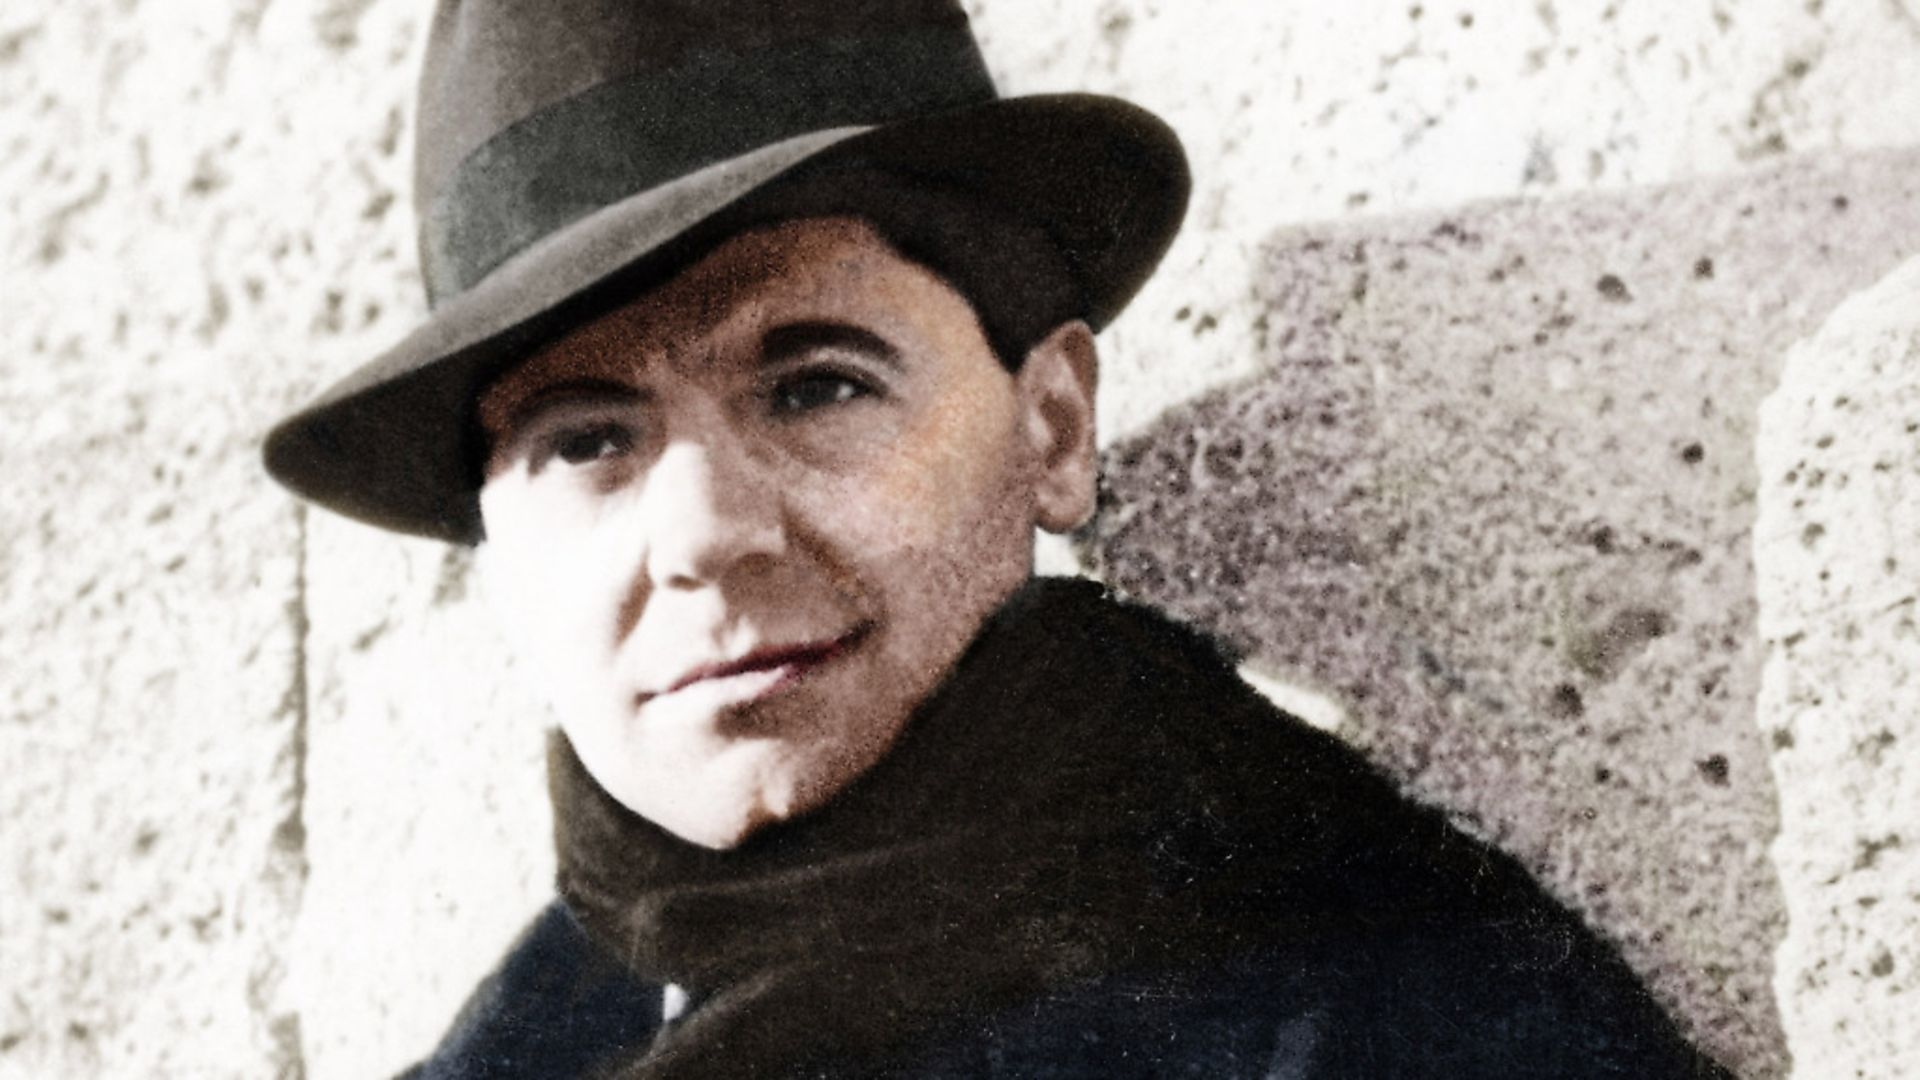 Jean Moulin (1899-1943), member of the French Resistance during World War II. In 1939. Coloured photograph. (Photo by adoc-photos/Corbis via Getty Images) - Credit: Corbis via Getty Images